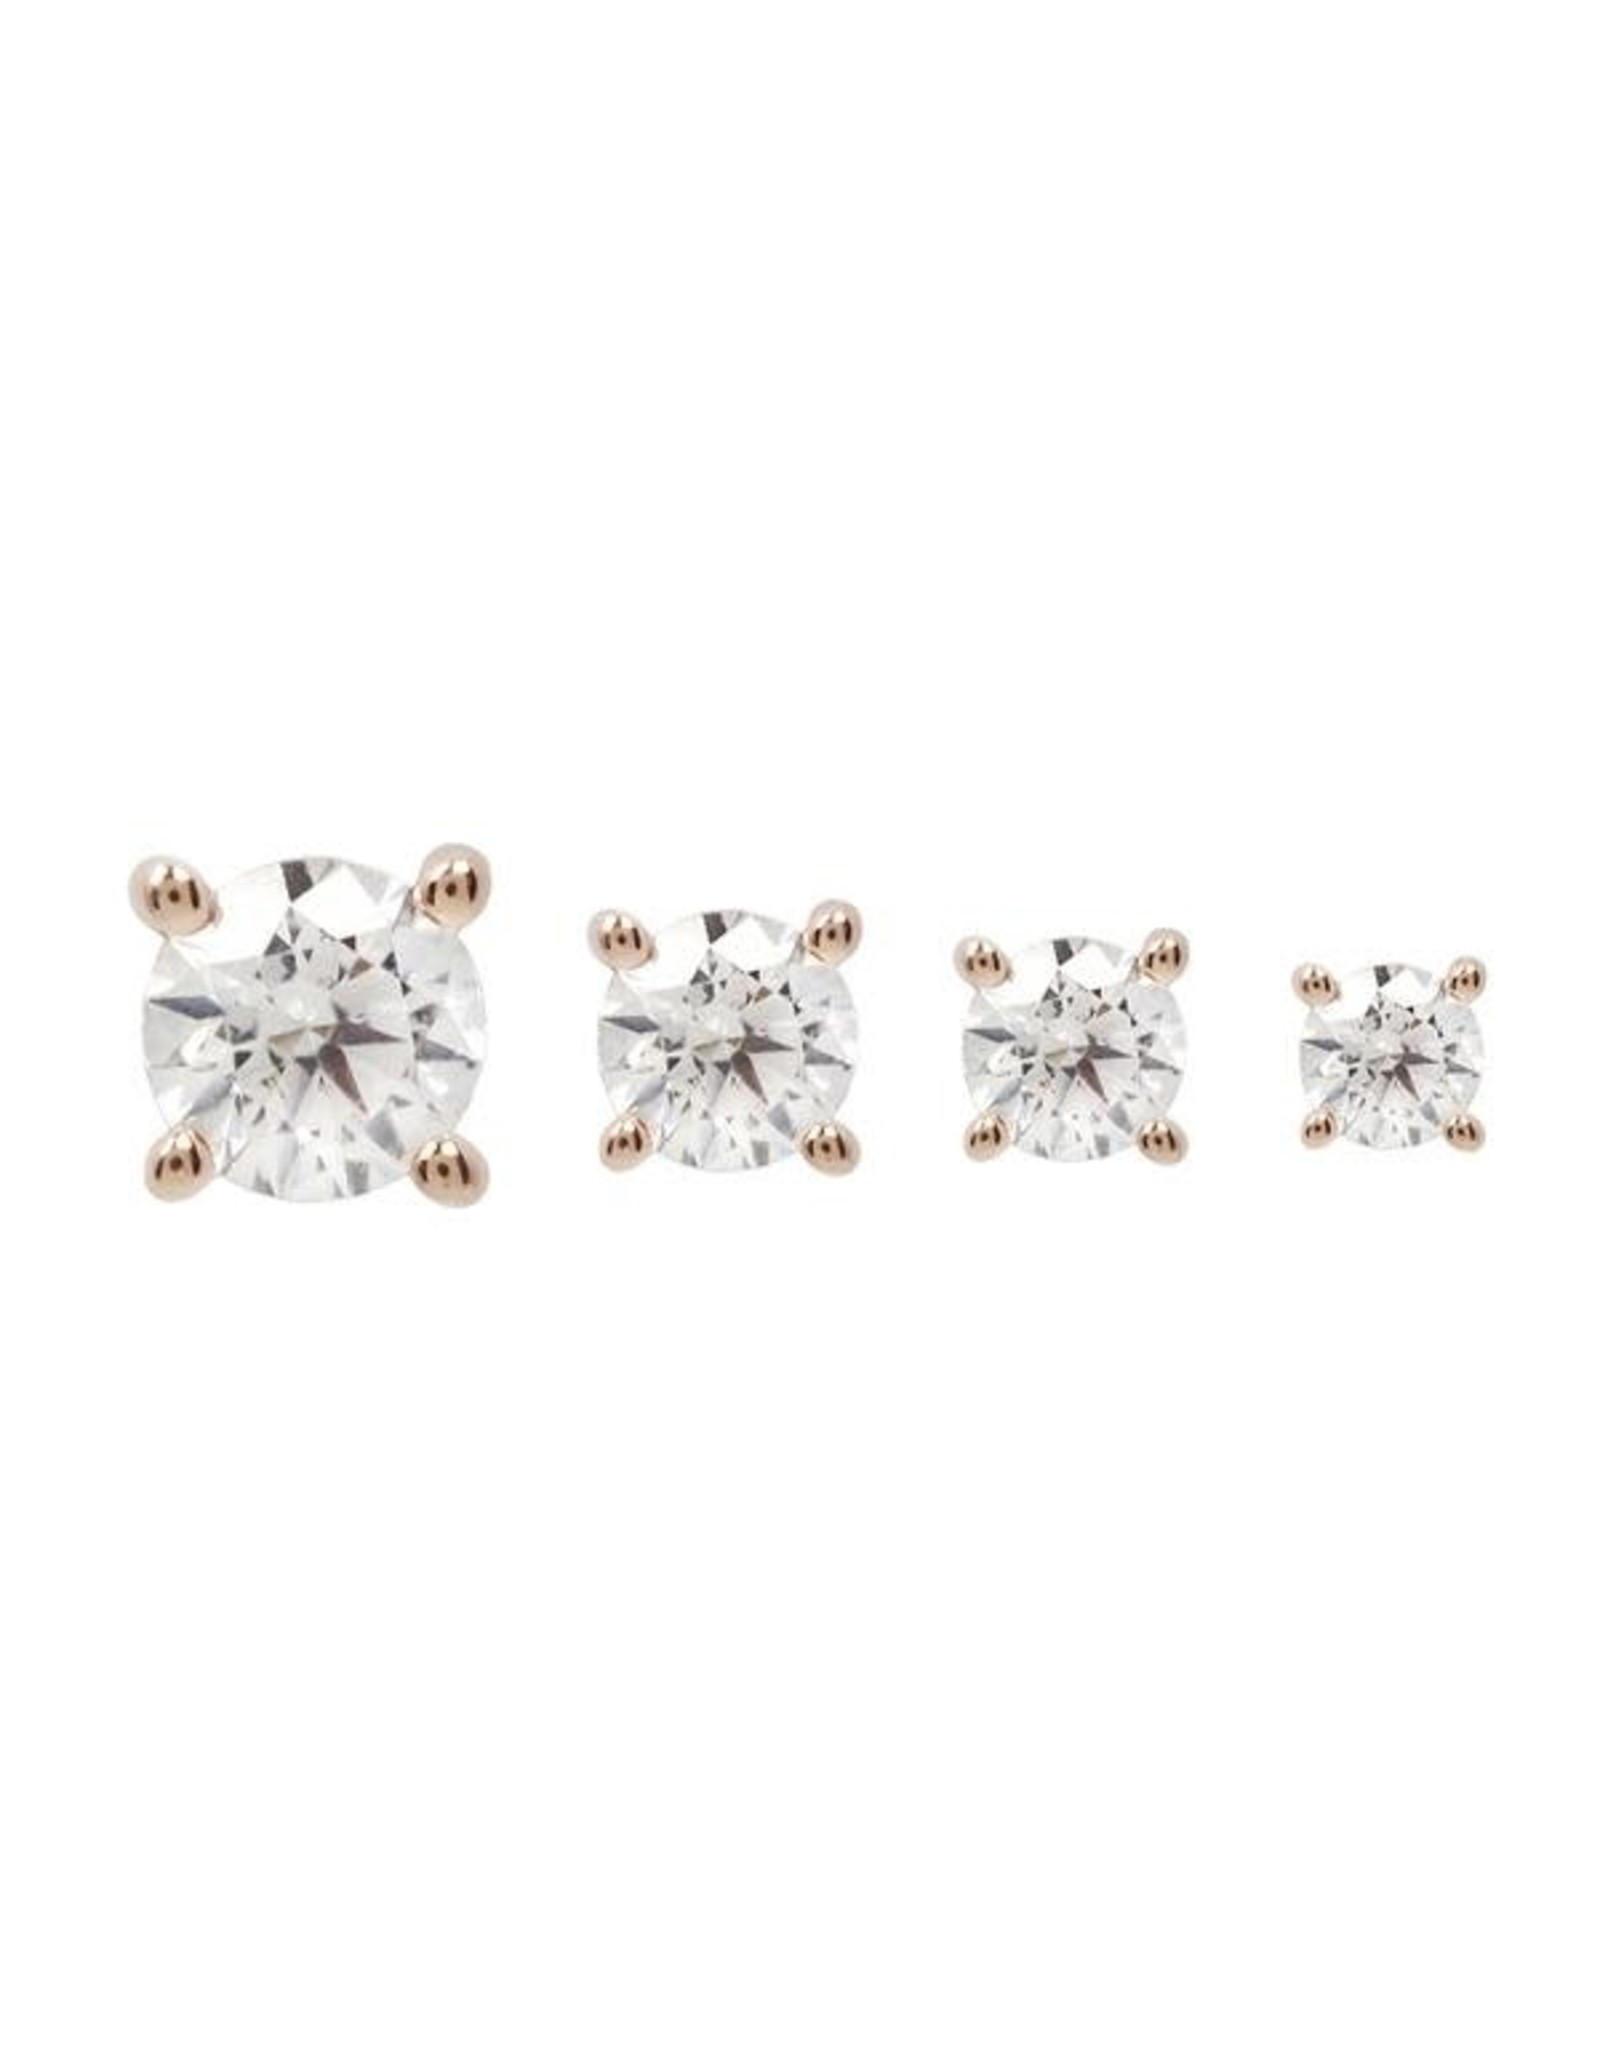 14k RG 2.5mm Prong Set CZ Threadless End